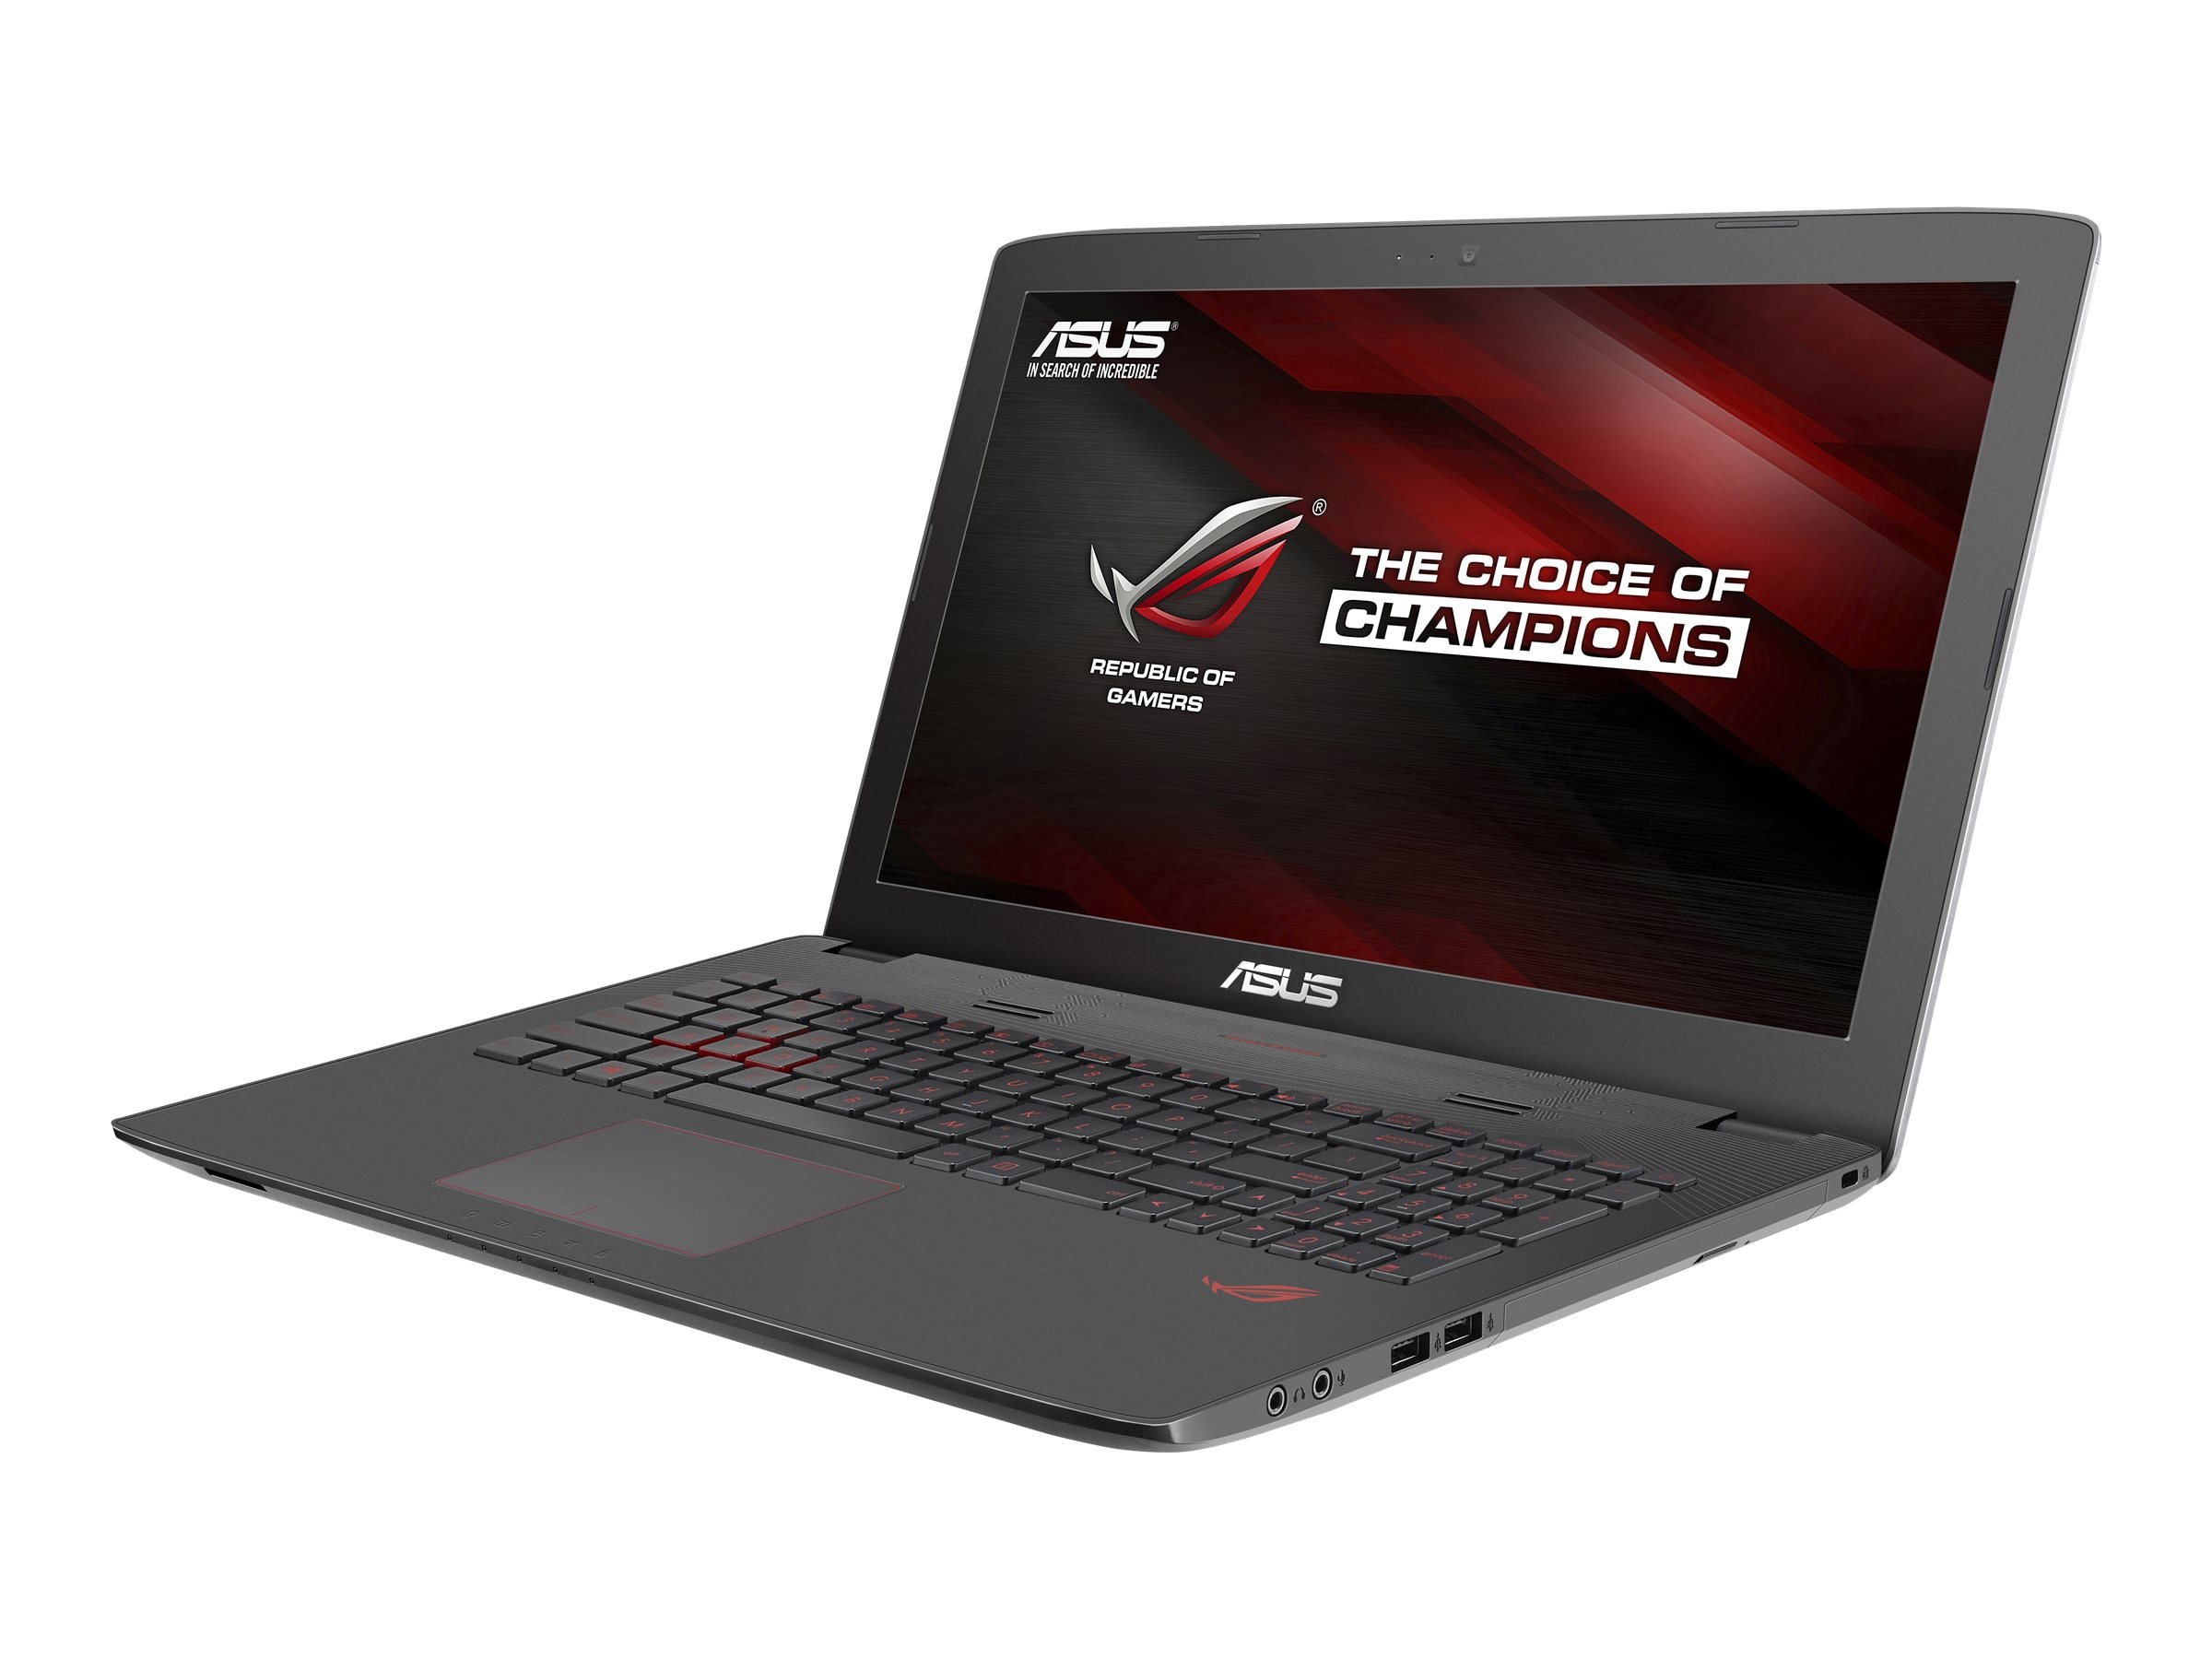 Asus GL752VW-DH71 17.3 Notebook PC, GL752VW-DH71, 30719059, Notebooks